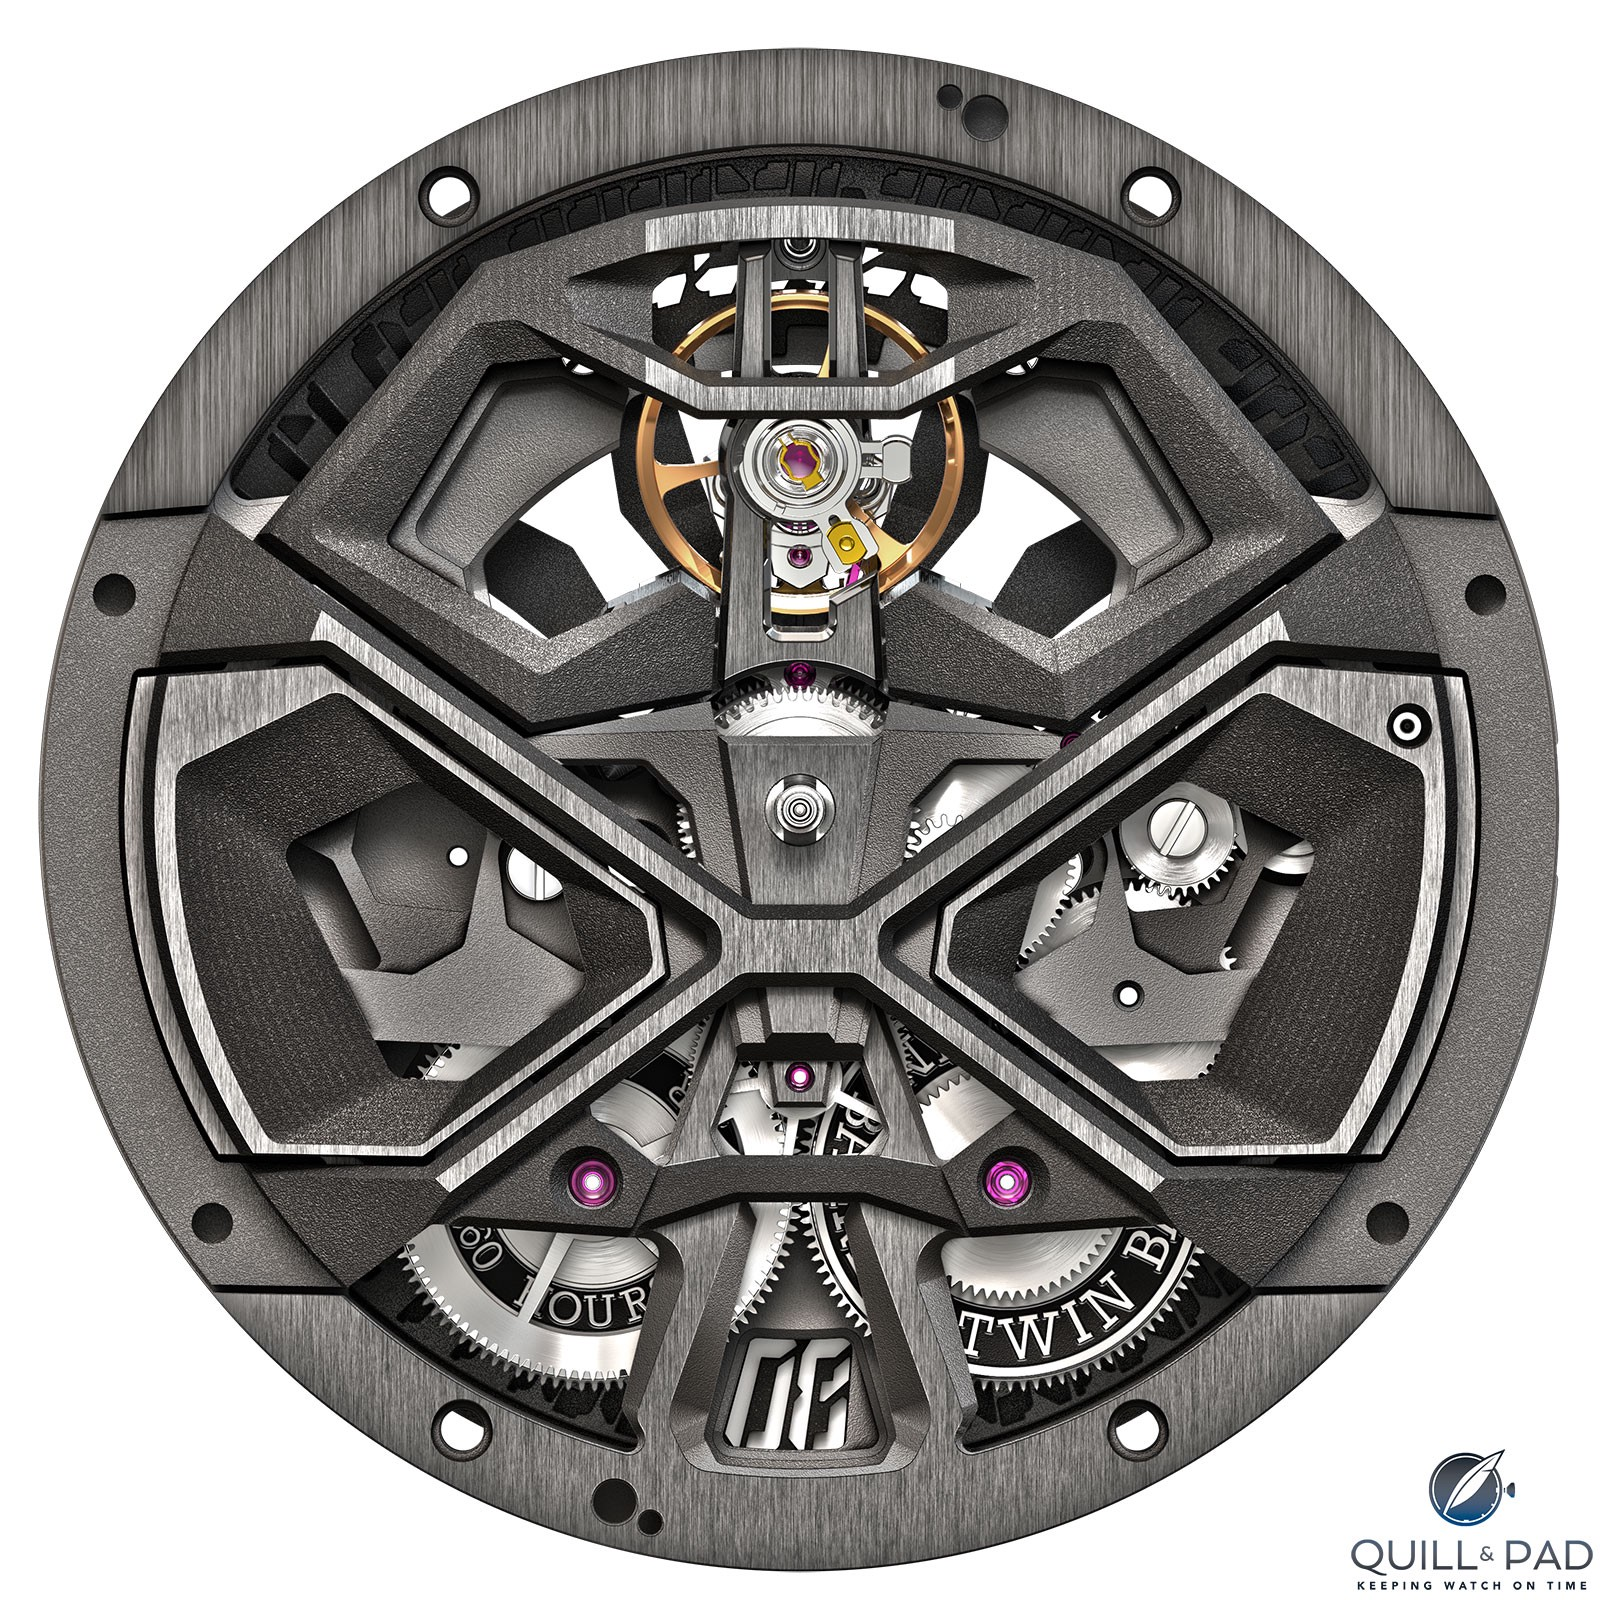 Roger Dubuis Caliber RD60 powers the Excalibur Huracán Performante